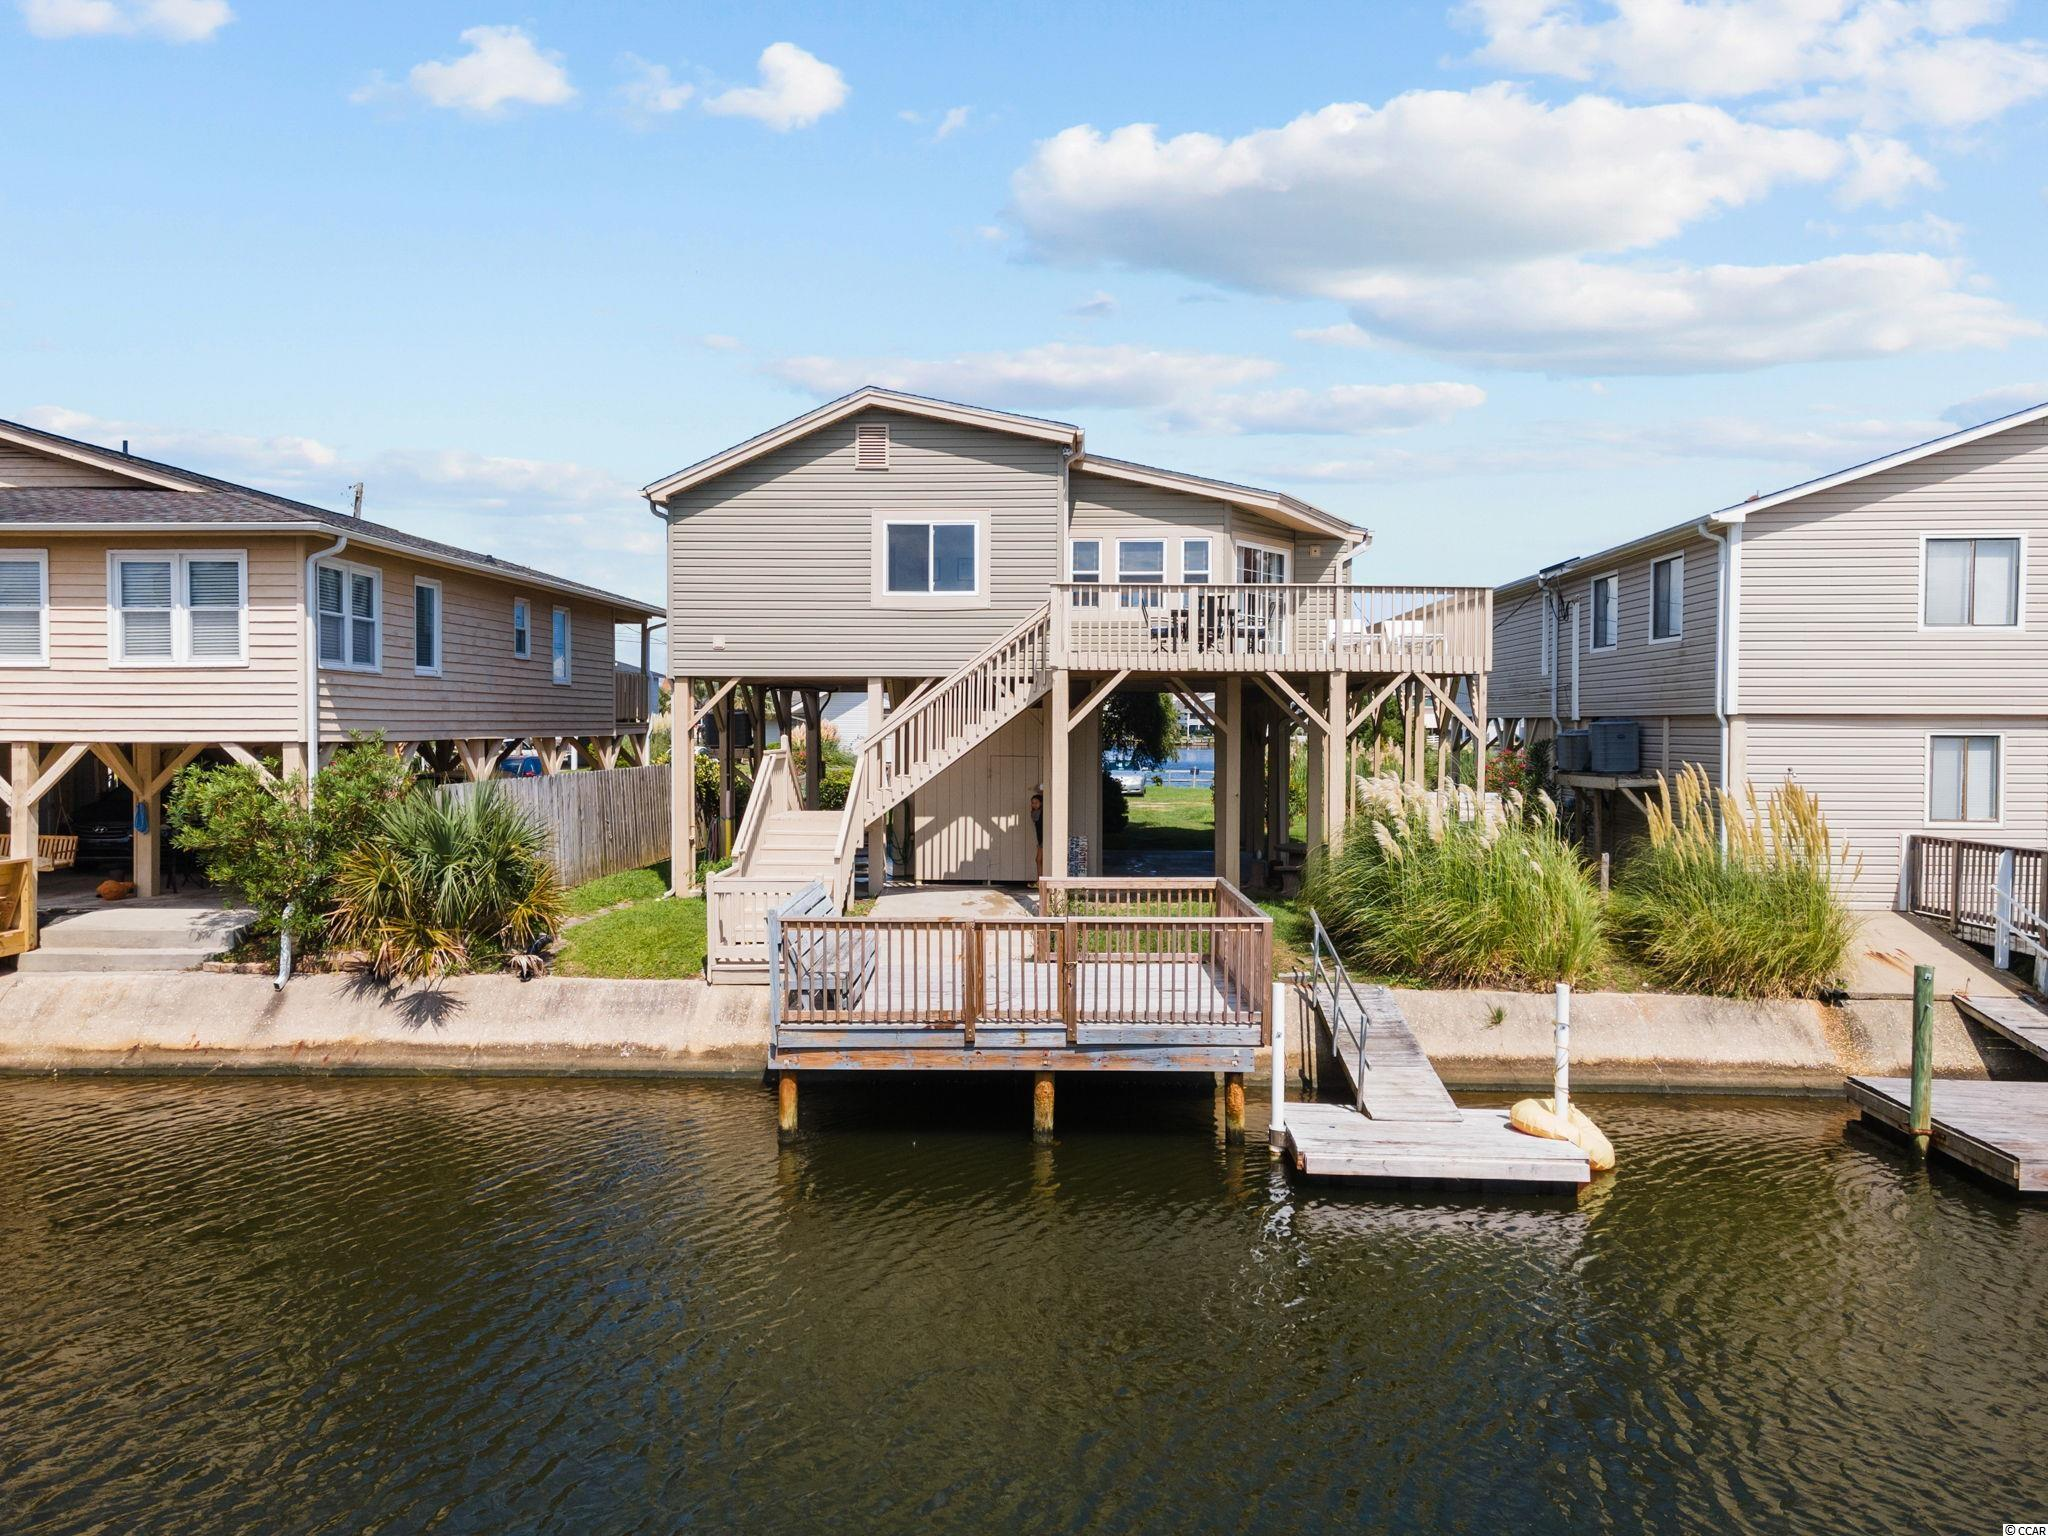 Welcome to Serendipity and your chance to own a little piece of the beach!  Wonderful open and cozy floor plan and outstanding water views.  You could not ask for a better location in Cherry Grove!  Classic raised beach house construction on the lakefront with a fixed deck over the water and floating dock.  This home was built substantially higher than surrounding homes and has virtually no flooding risk.  A concrete bulkhead is in place and provides low maintenance.  As you enter the interior of the home you'll find an open floor plan with a spacious kitchen, dining and living area with vaulted ceiling.  It's a great space for family and friends to gather.  Windows fill the living and kitchen areas providing a 180 degree view of the water.  Luxury vinyl plank has been installed in the living areas for easy maintenance and an upgraded look.   The kitchen has plenty of counter space and a substantial breakfast bar for relaxed dining.   Just off of the kitchen is the owners suite with attached bathroom.  A true bonus is the in home laundry room adjacent to the owners suite.  On the opposite side of the kitchen you'll find two additional bedrooms and a hall bath.  A large wrap around deck has been added to the home to take advantage of it's prime waterfront location.  Easy access from both the owners suite and living room through sliding doors.  The exterior of this home is vinyl for low maintenance and has vinyl replacement windows and newer doors/sliders.  The ground floor has a large storage area and a spacious outdoor shower.  The home is sold fully furnished and is ready for you to enjoy as a vacation home or as a new addition to your investment portfolio.  Easy and convenient access to the oceanfront by foot or golf cart.  It's just a short walk as well to the Cherry Grove Fishing Pier and dining options.  This home is ready for new owners and is the perfect option for you own piece of the beach!  All information is deemed reliable, buyer is responsible for verif